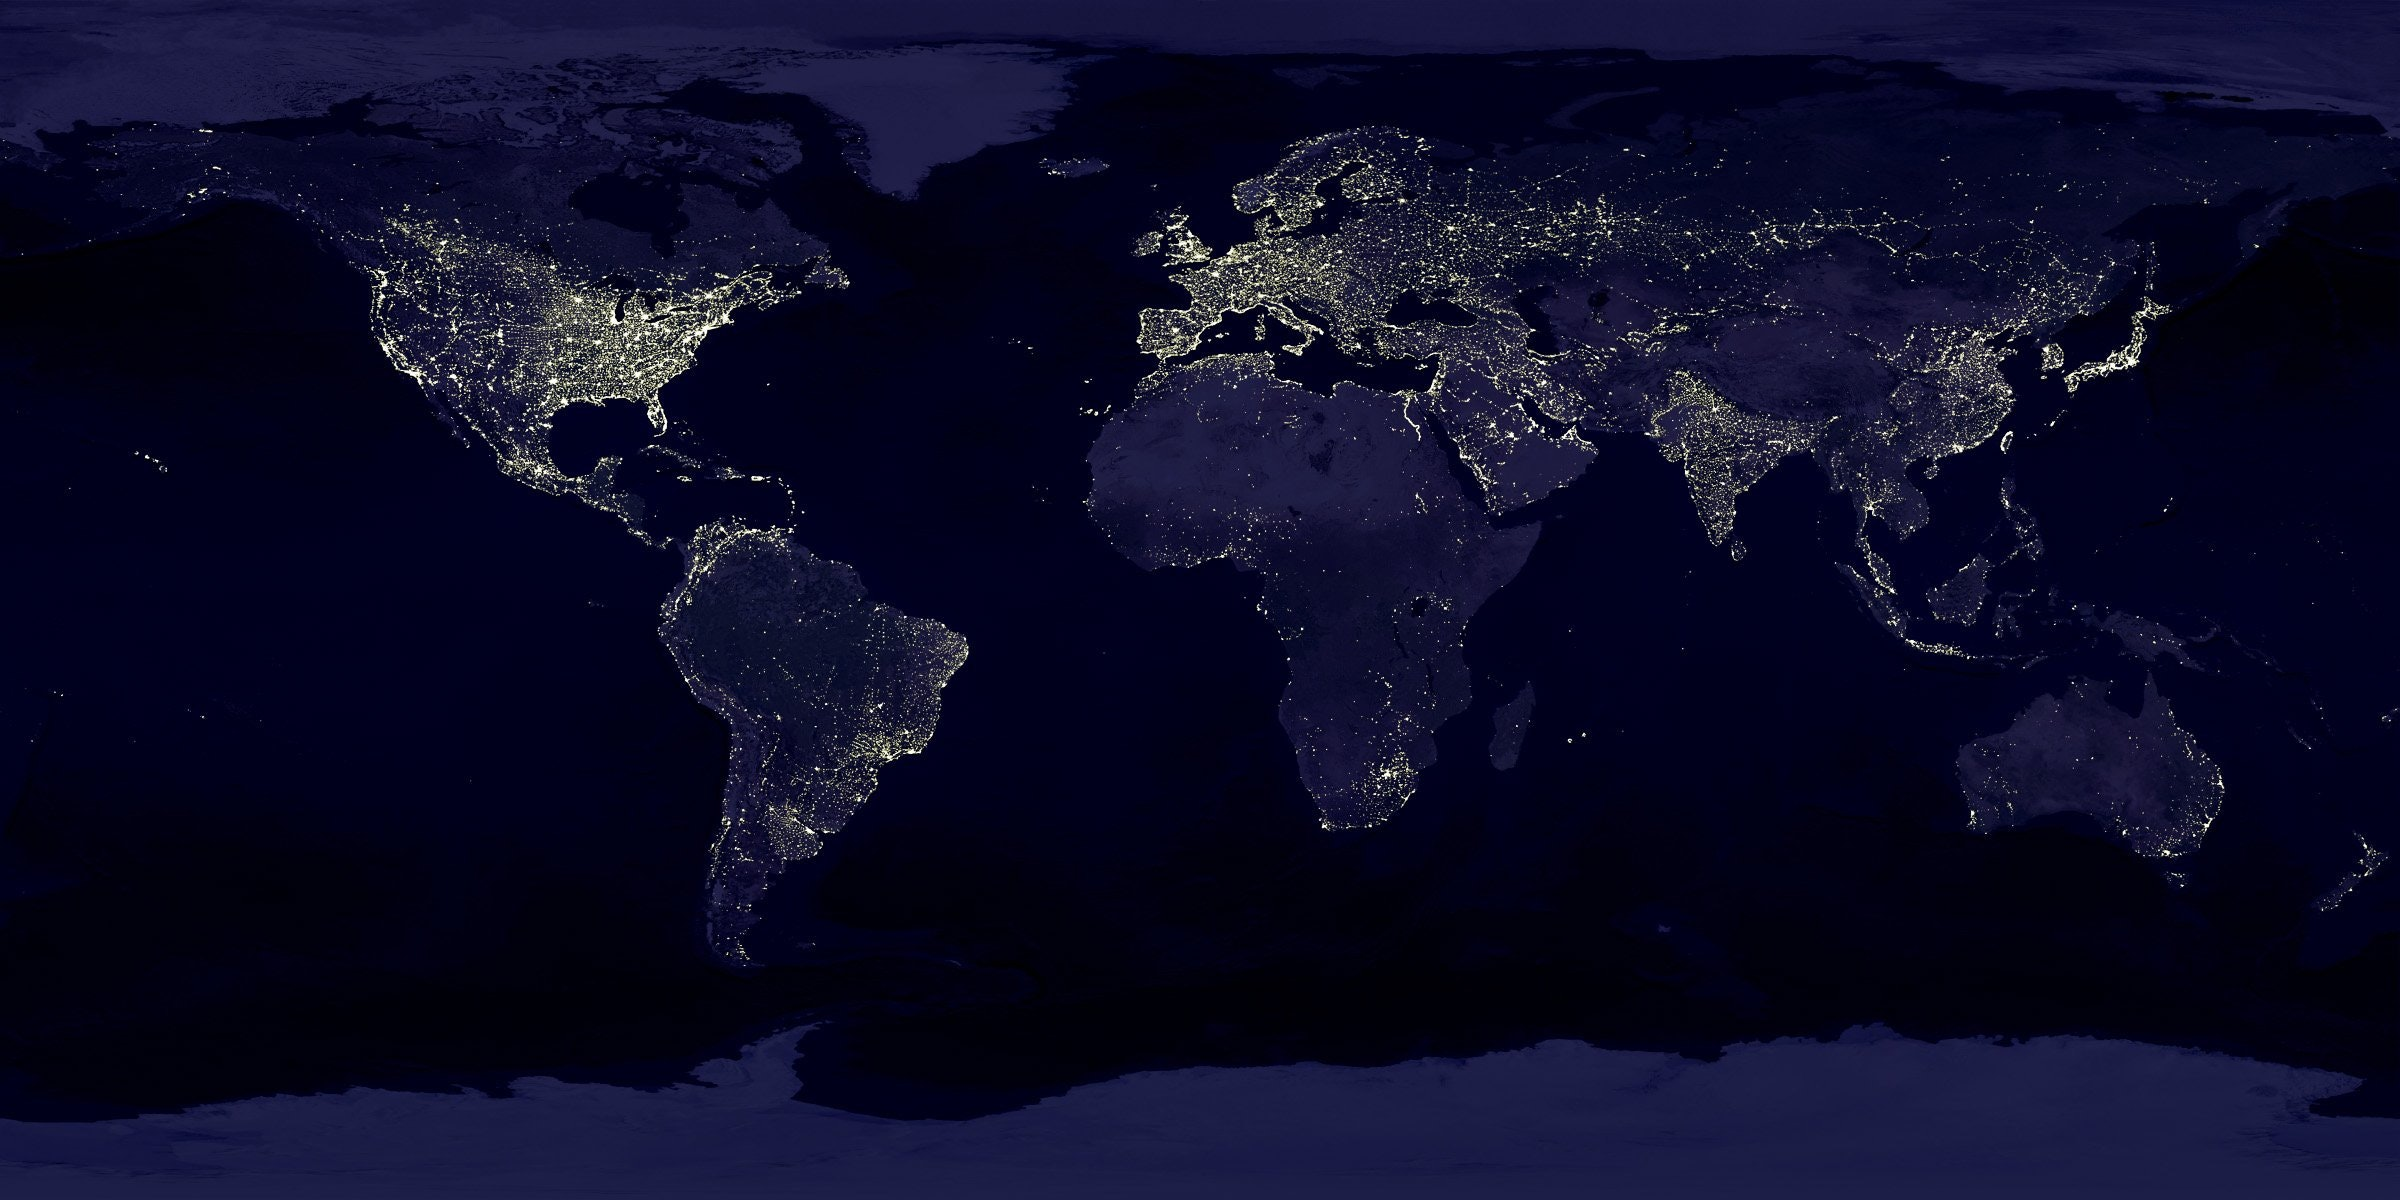 earth-lights-world-41949.jpg